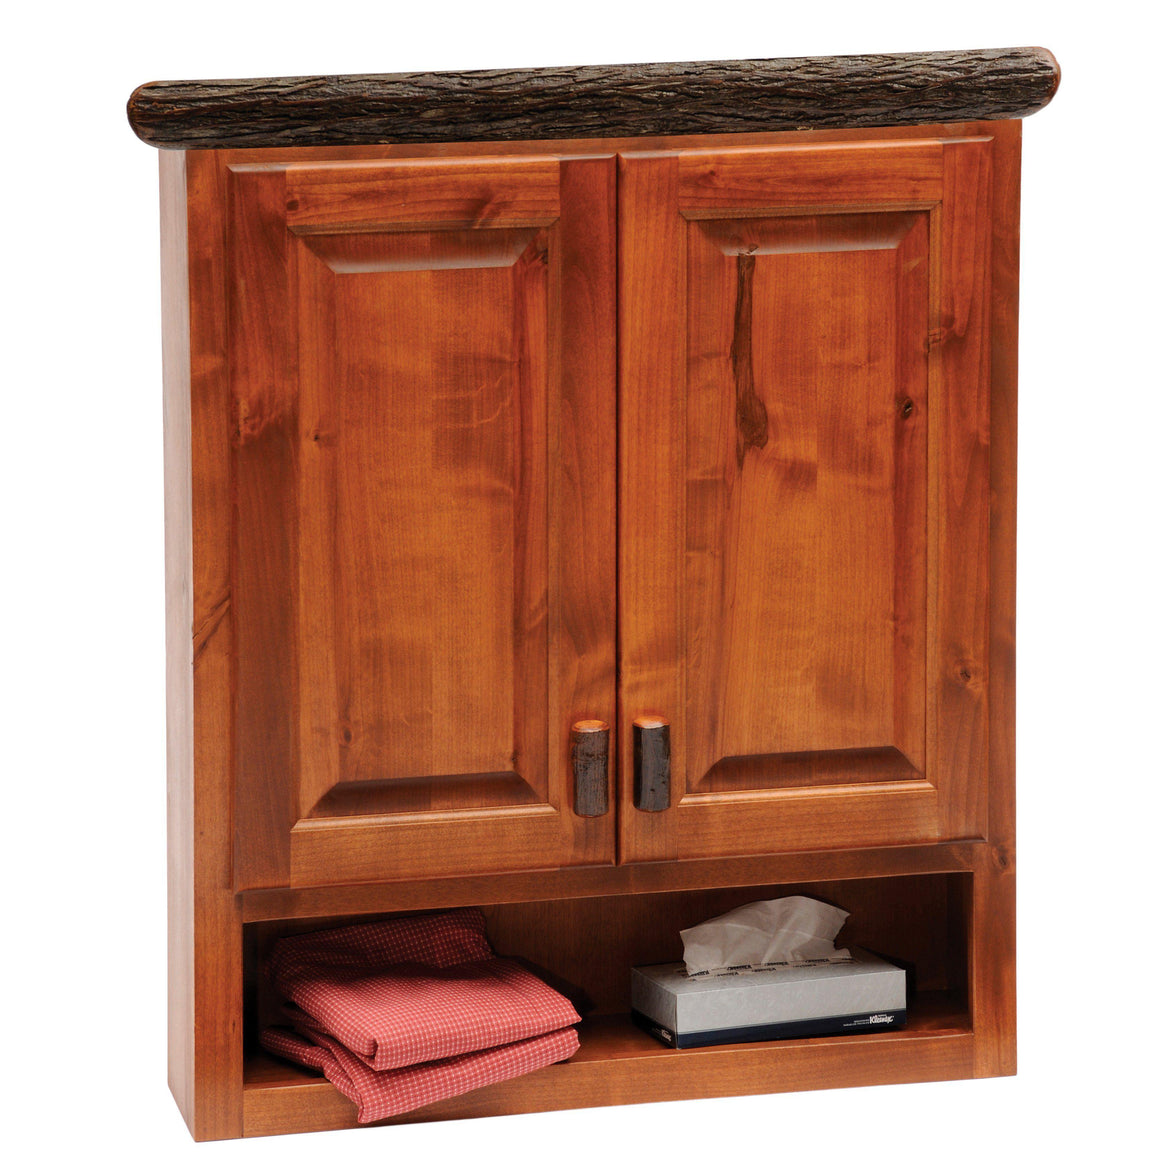 Hickory Toilet Topper Cabinet - Standard Finish-Rustic Deco Incorporated